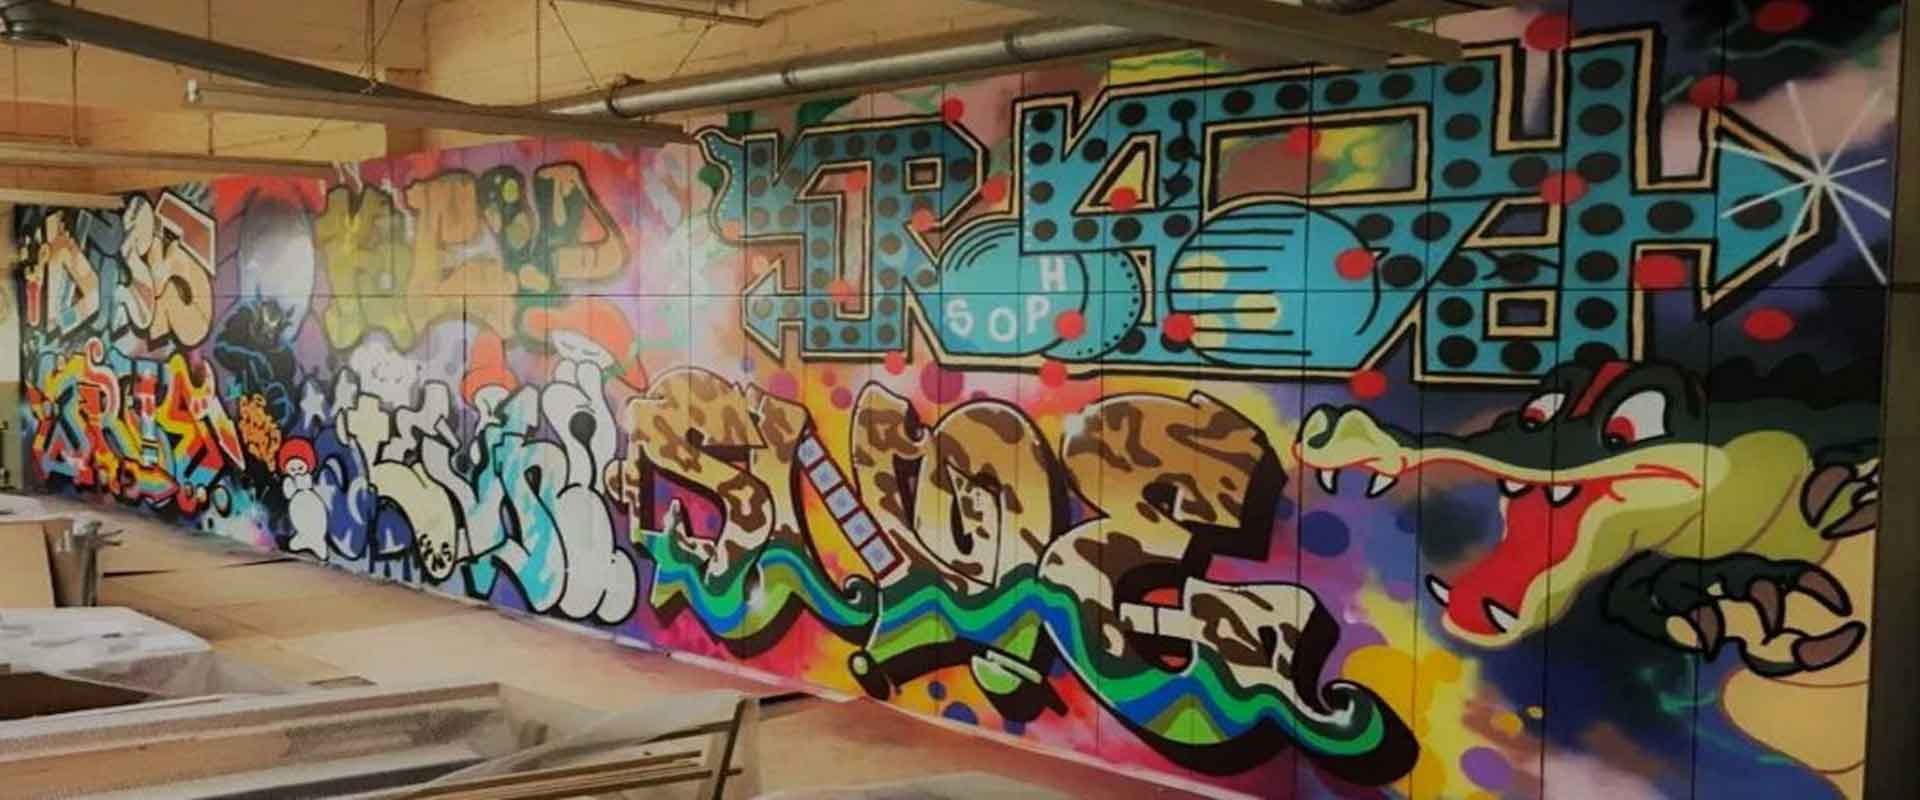 Joinery-workshop-graffiti-wall